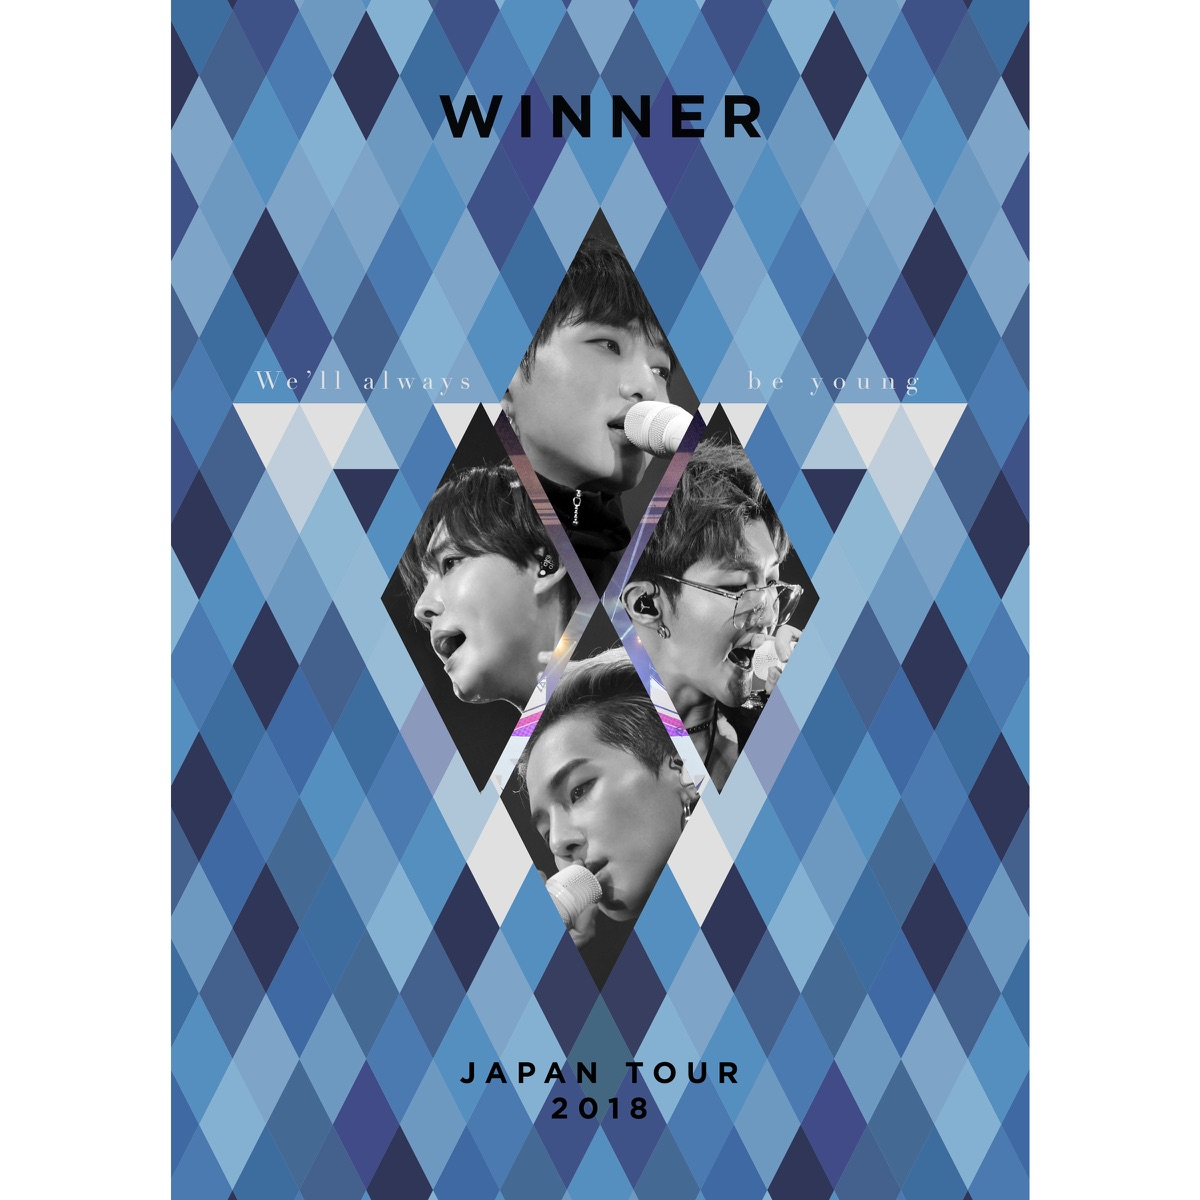 WINNER JAPAN TOUR 2018 Well always be young WINNER CD cover